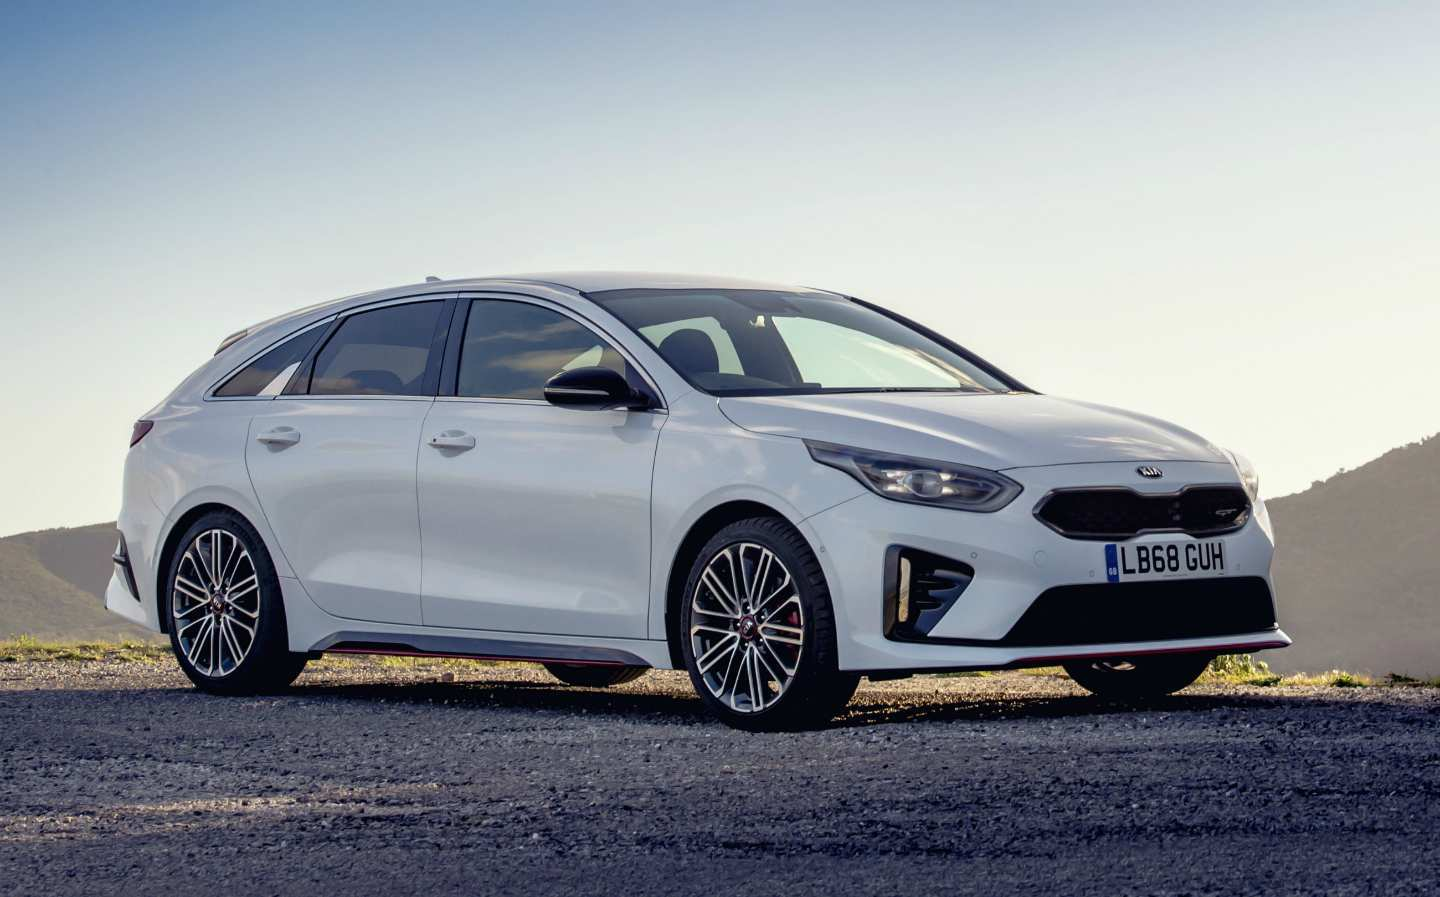 40 Gallery of Kia Pro Ceed Gt 2019 Images for Kia Pro Ceed Gt 2019